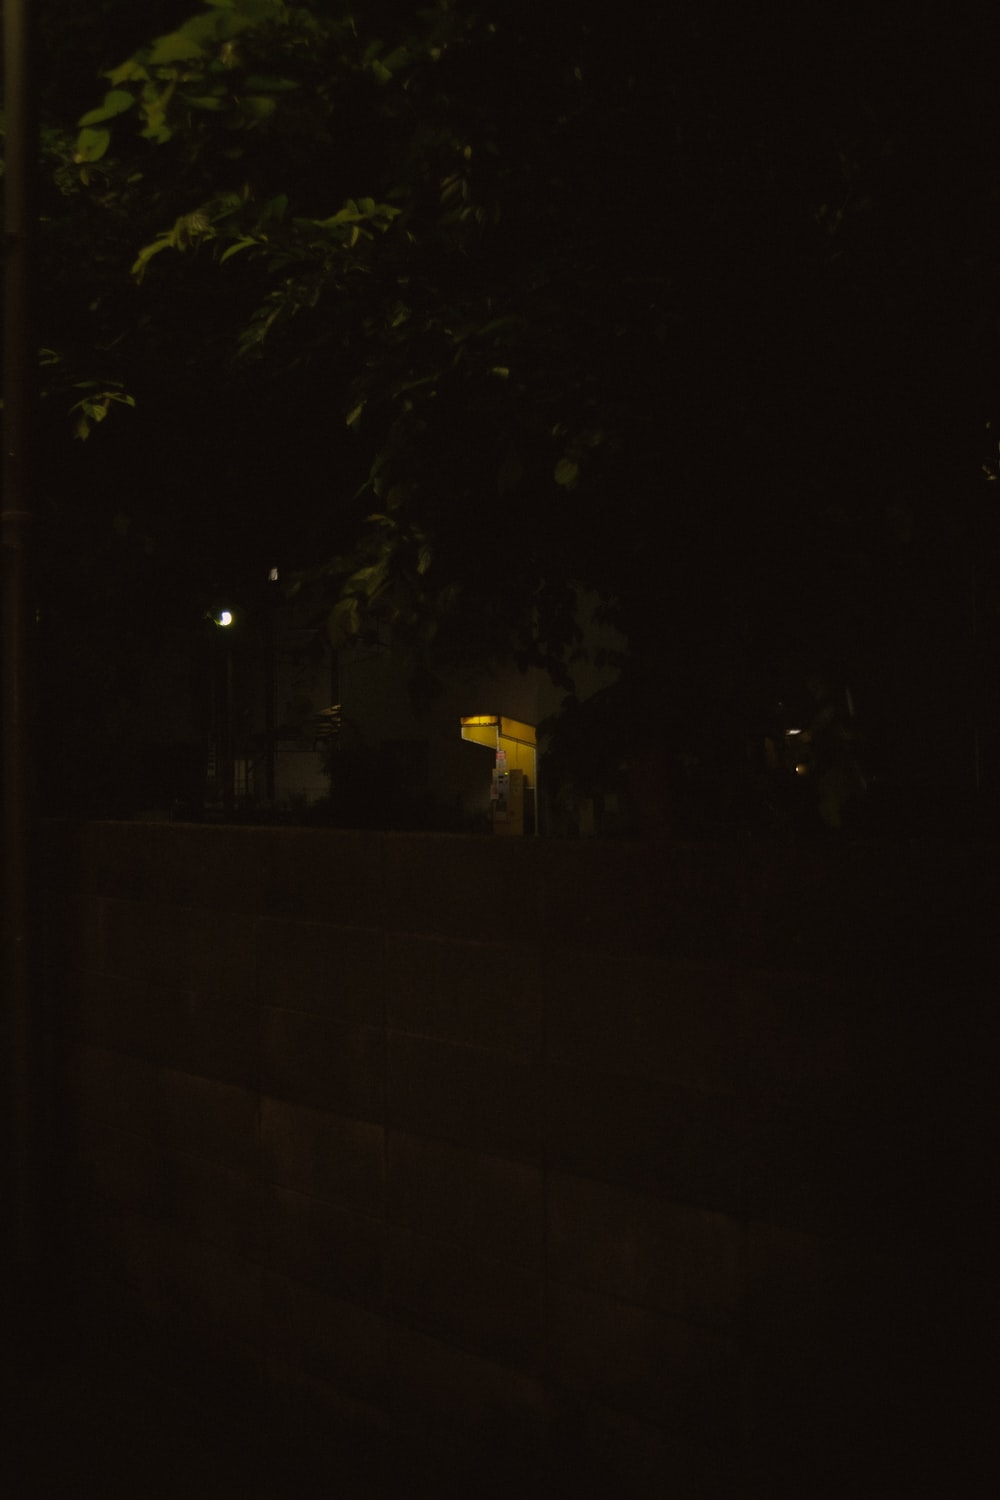 yellow street light turned on during nighttime